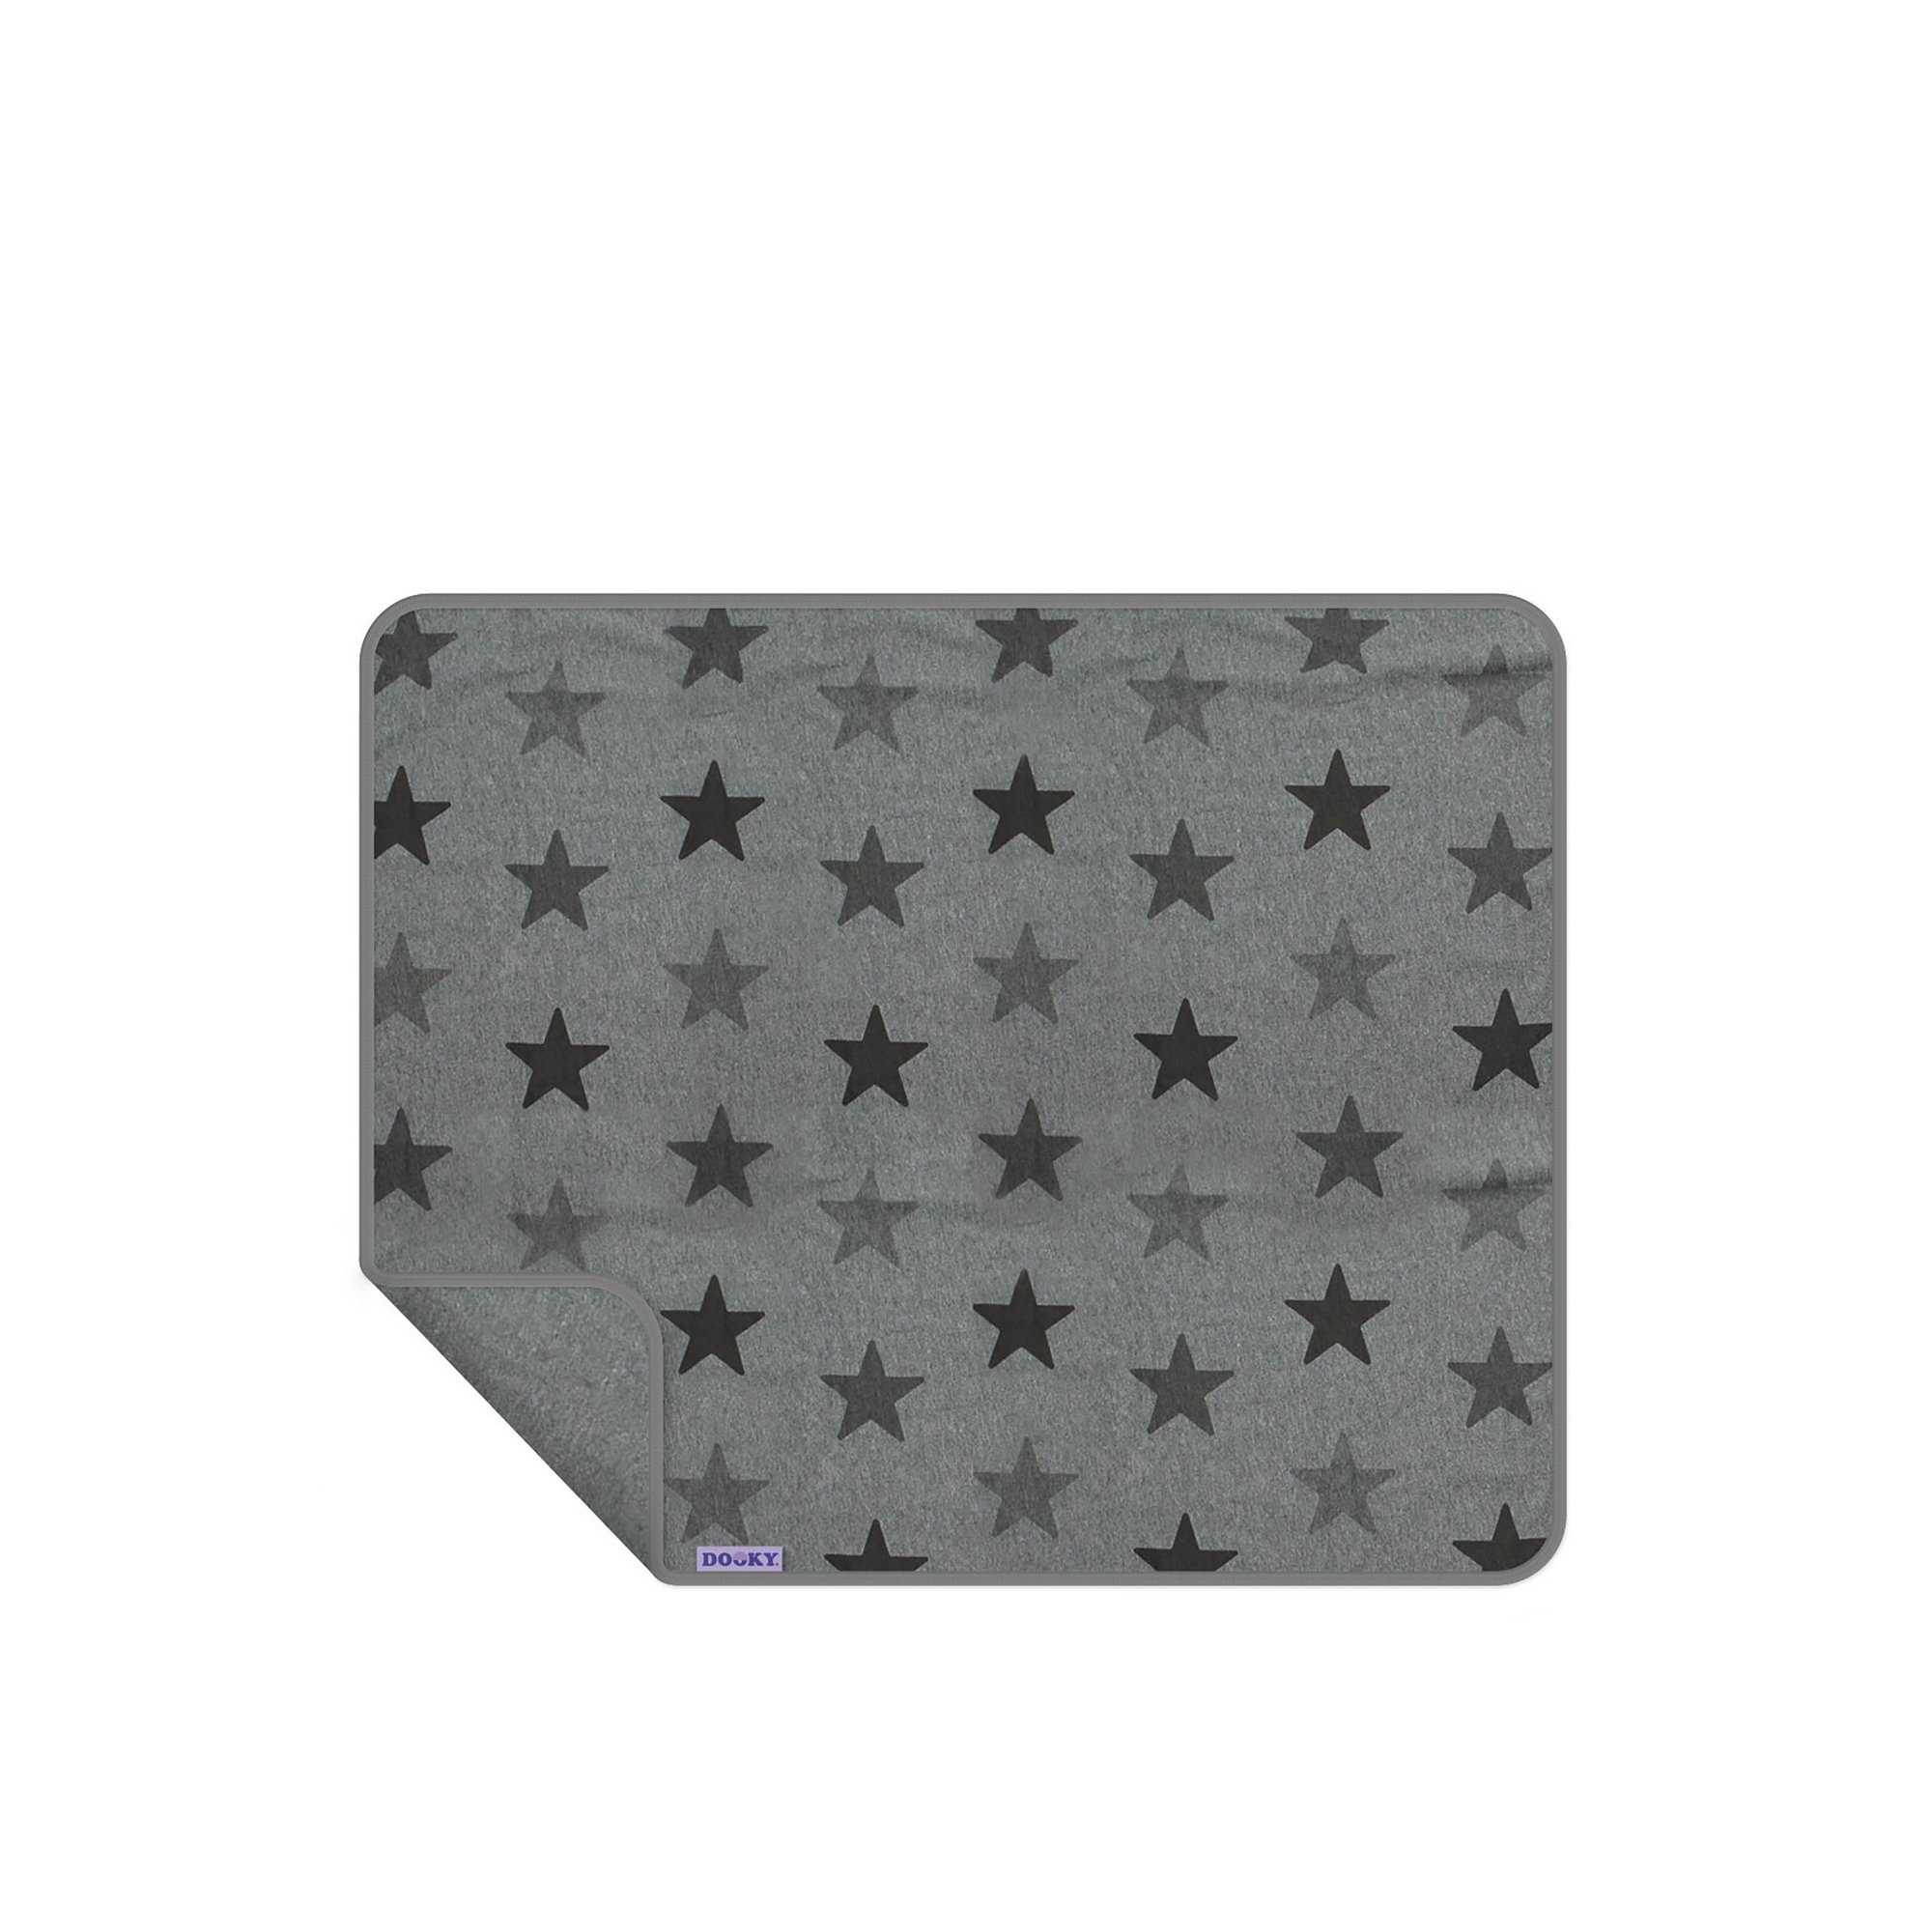 Image of Dooky Blanket Single Layer Grey Star